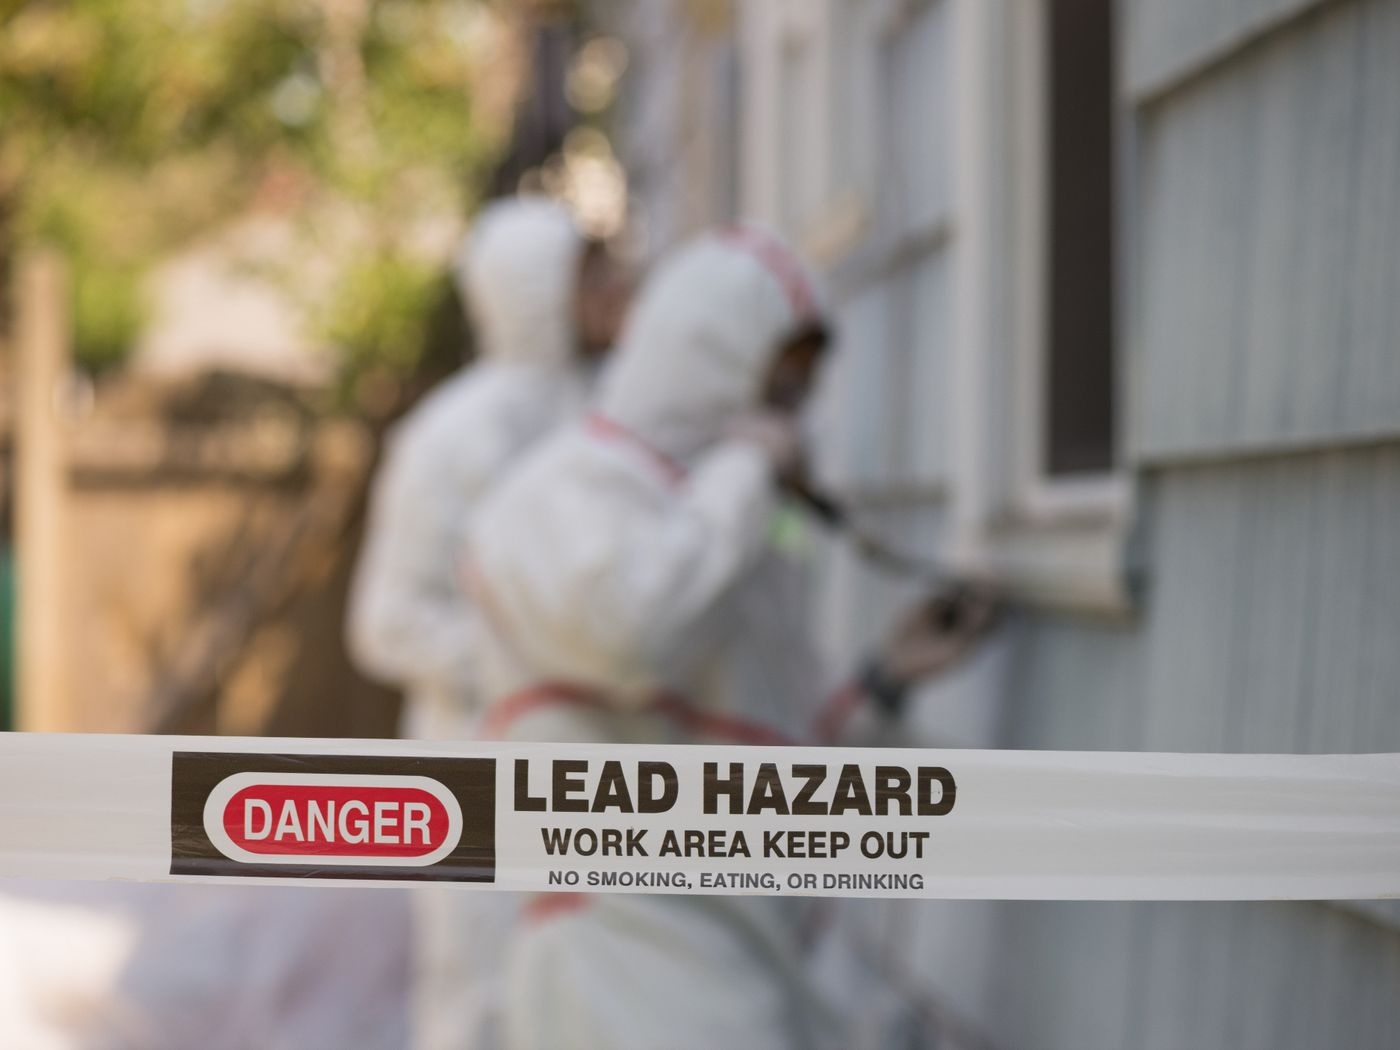 Bay Area cities spent 19 years suing over lead paint